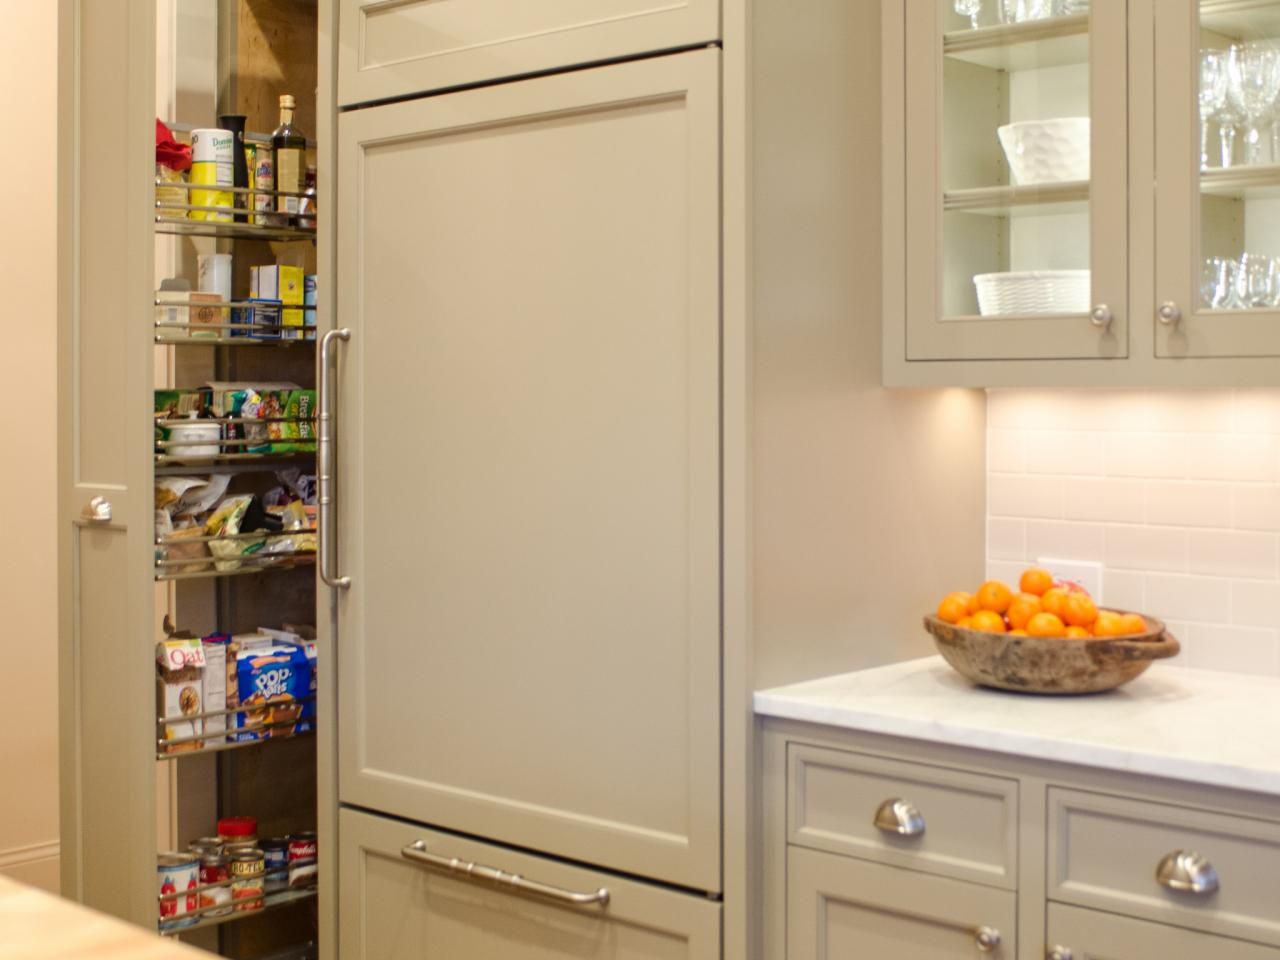 Kitchen Cabinet Drawers Stellar Ways To Organize Your Kitchen Cabinets Drawers Pantry